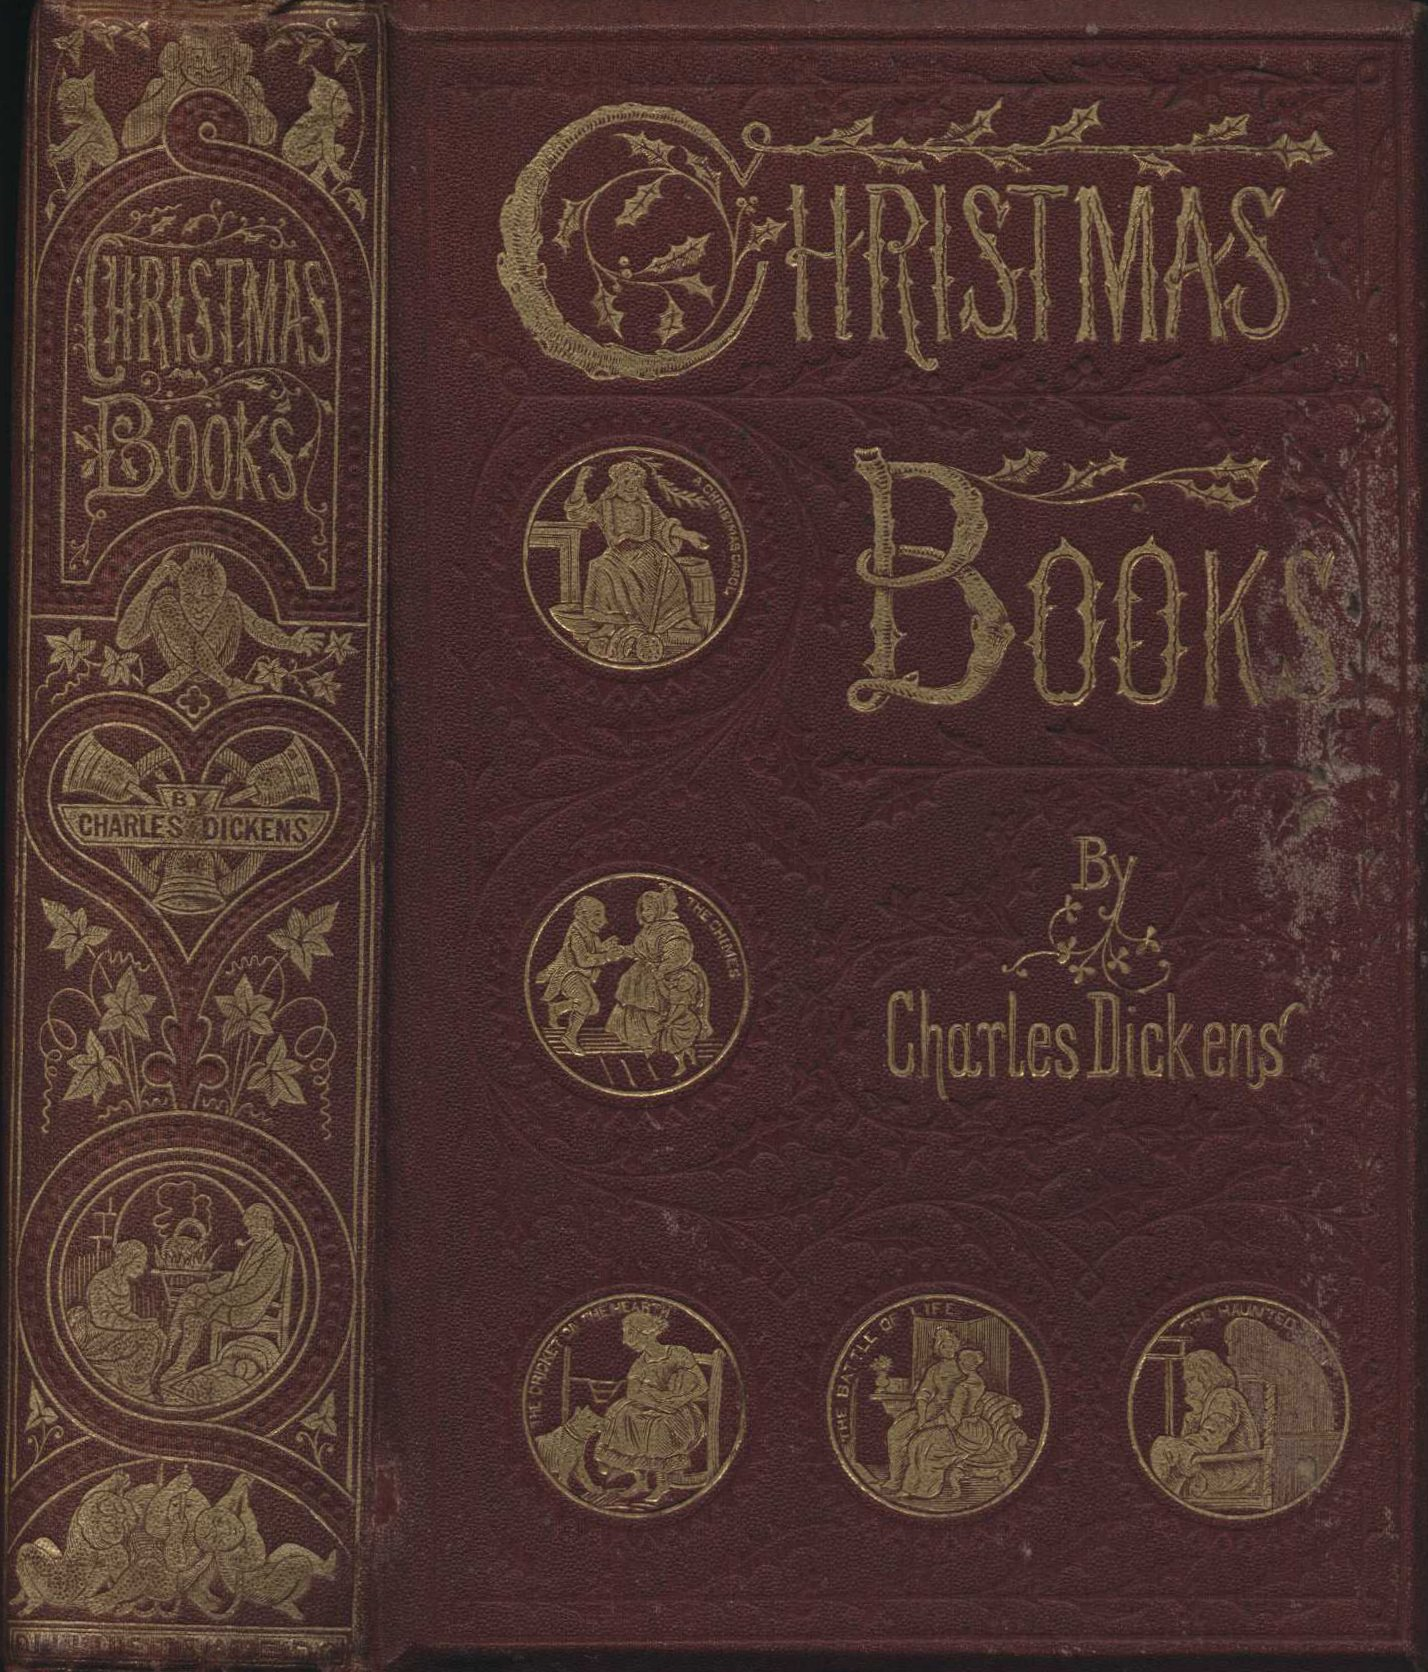 Charles Dickens. Christmas books. London: Chapman & Hall, 1869.